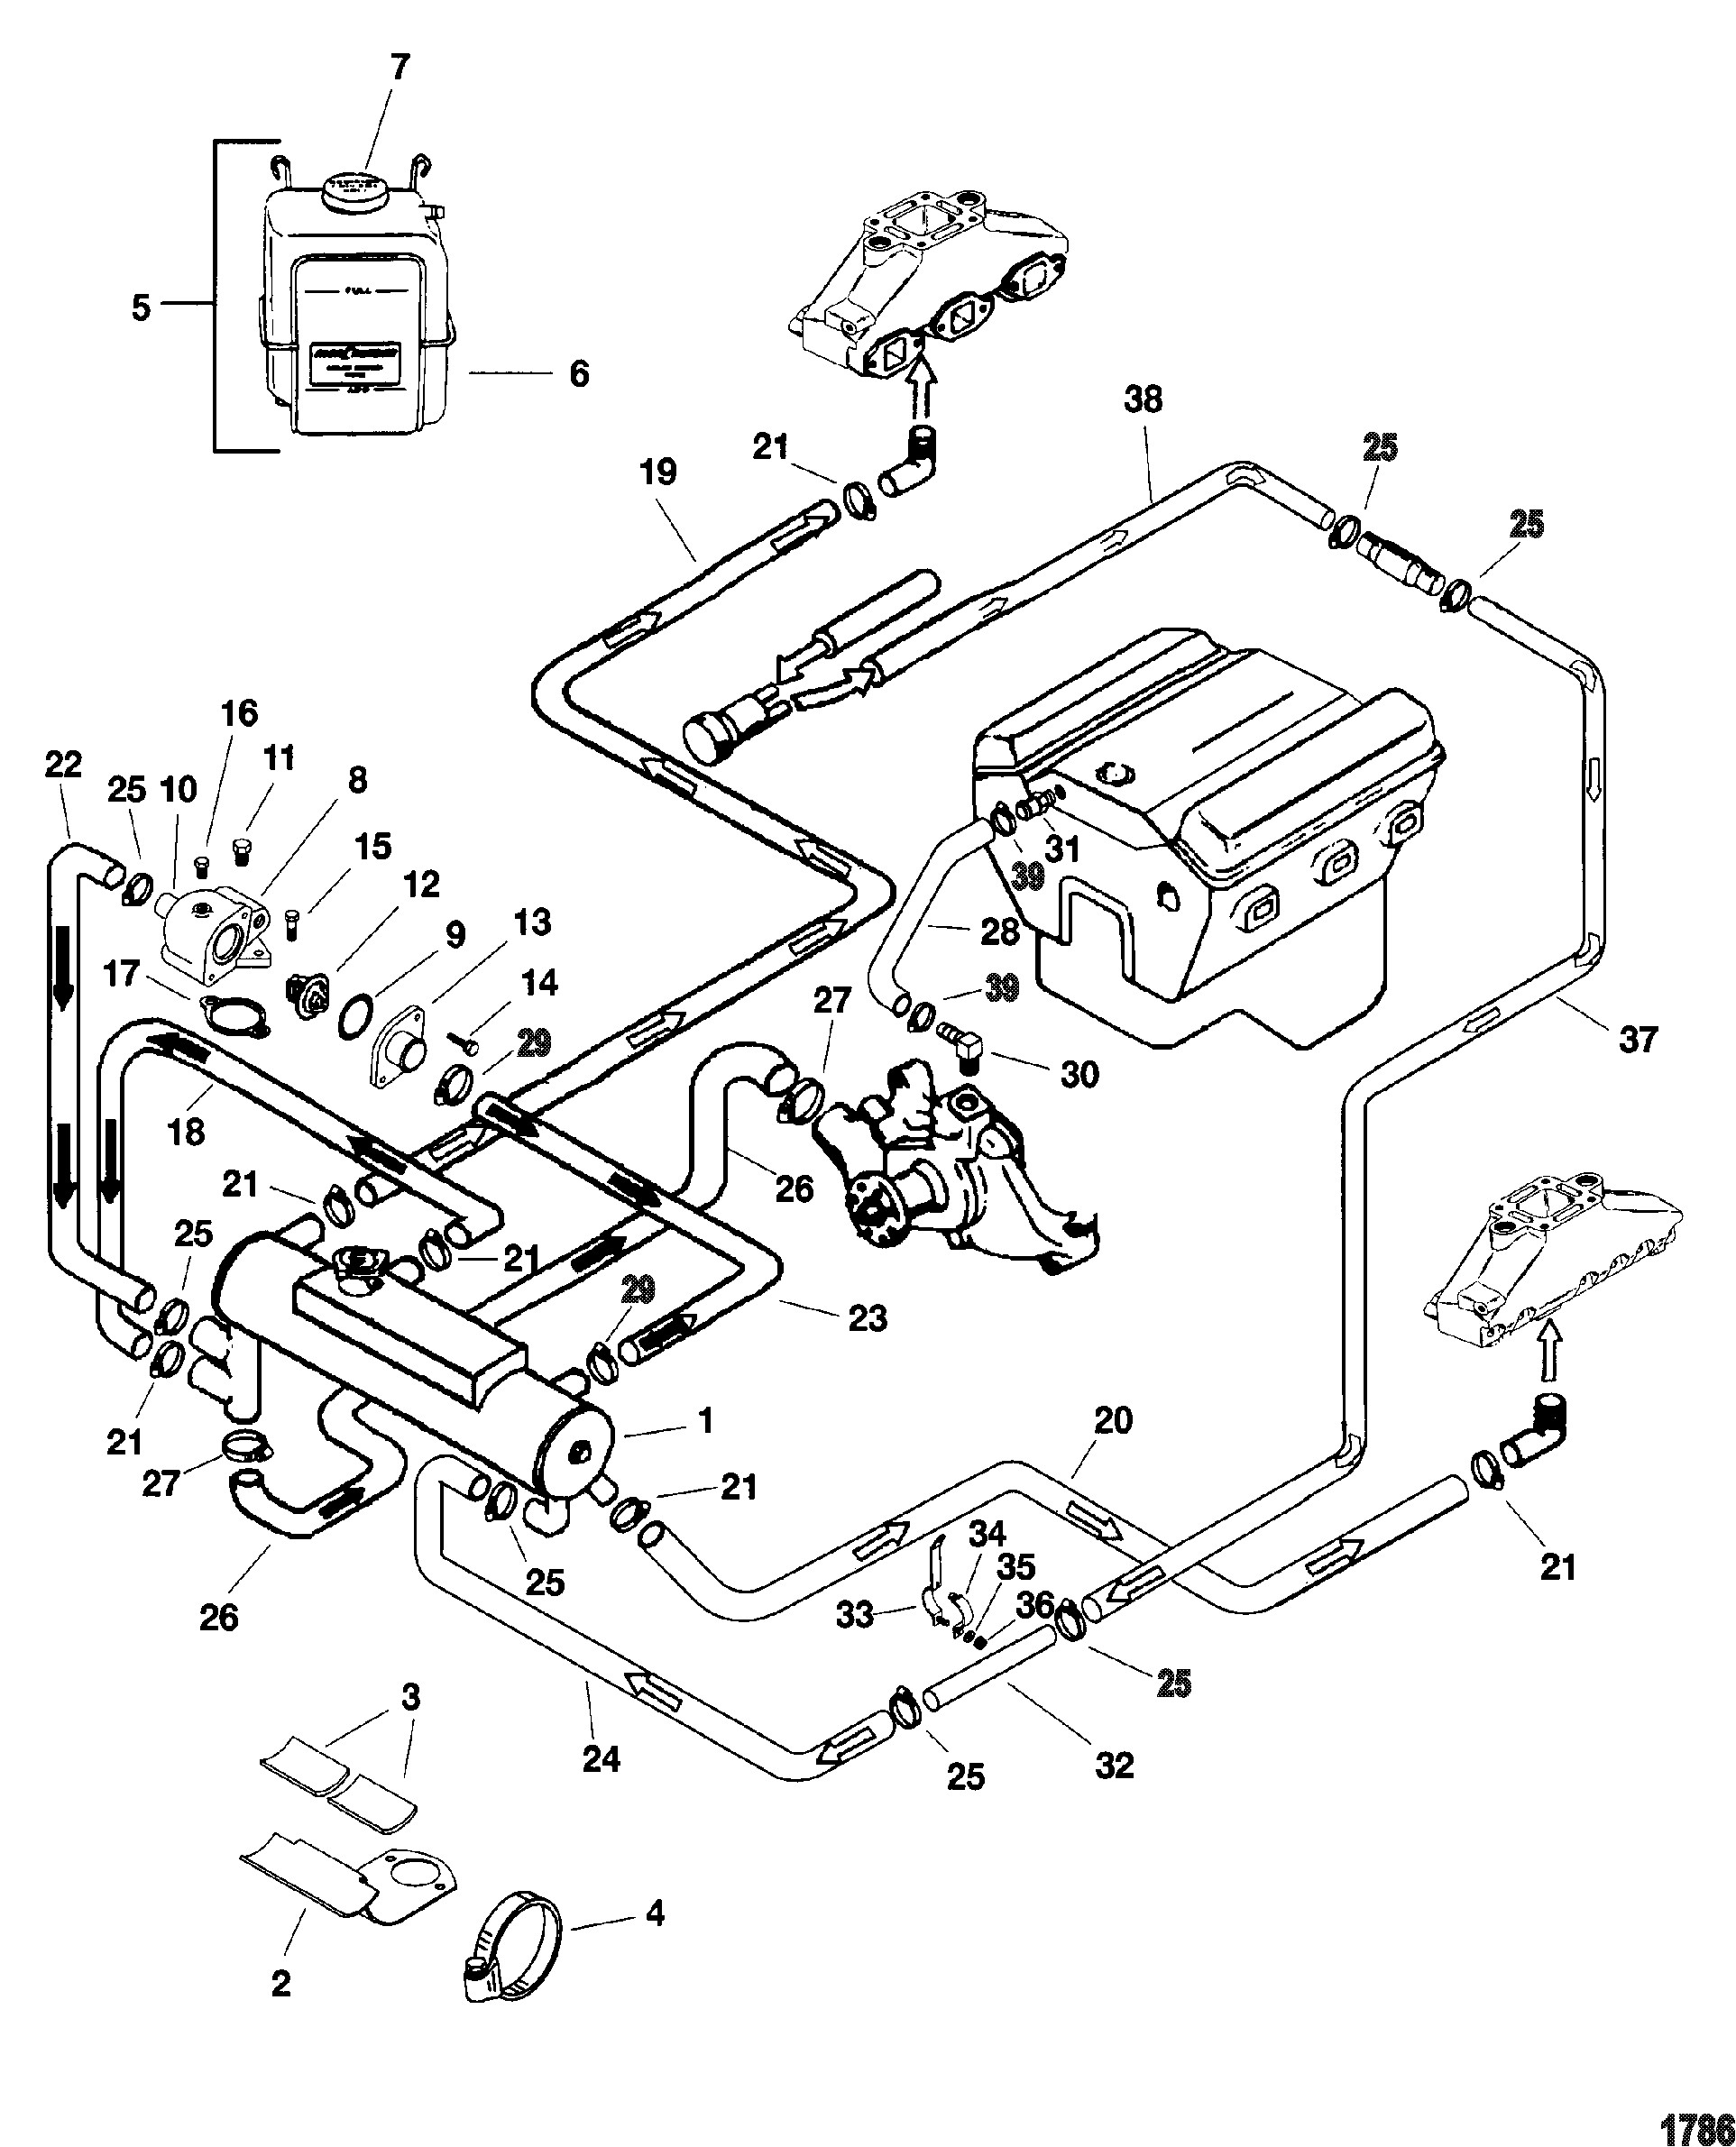 hight resolution of 2012 ford f250 exhaust diagram diy wiring diagrams u2022 rh dancesalsa co 2005 f250 fuse box